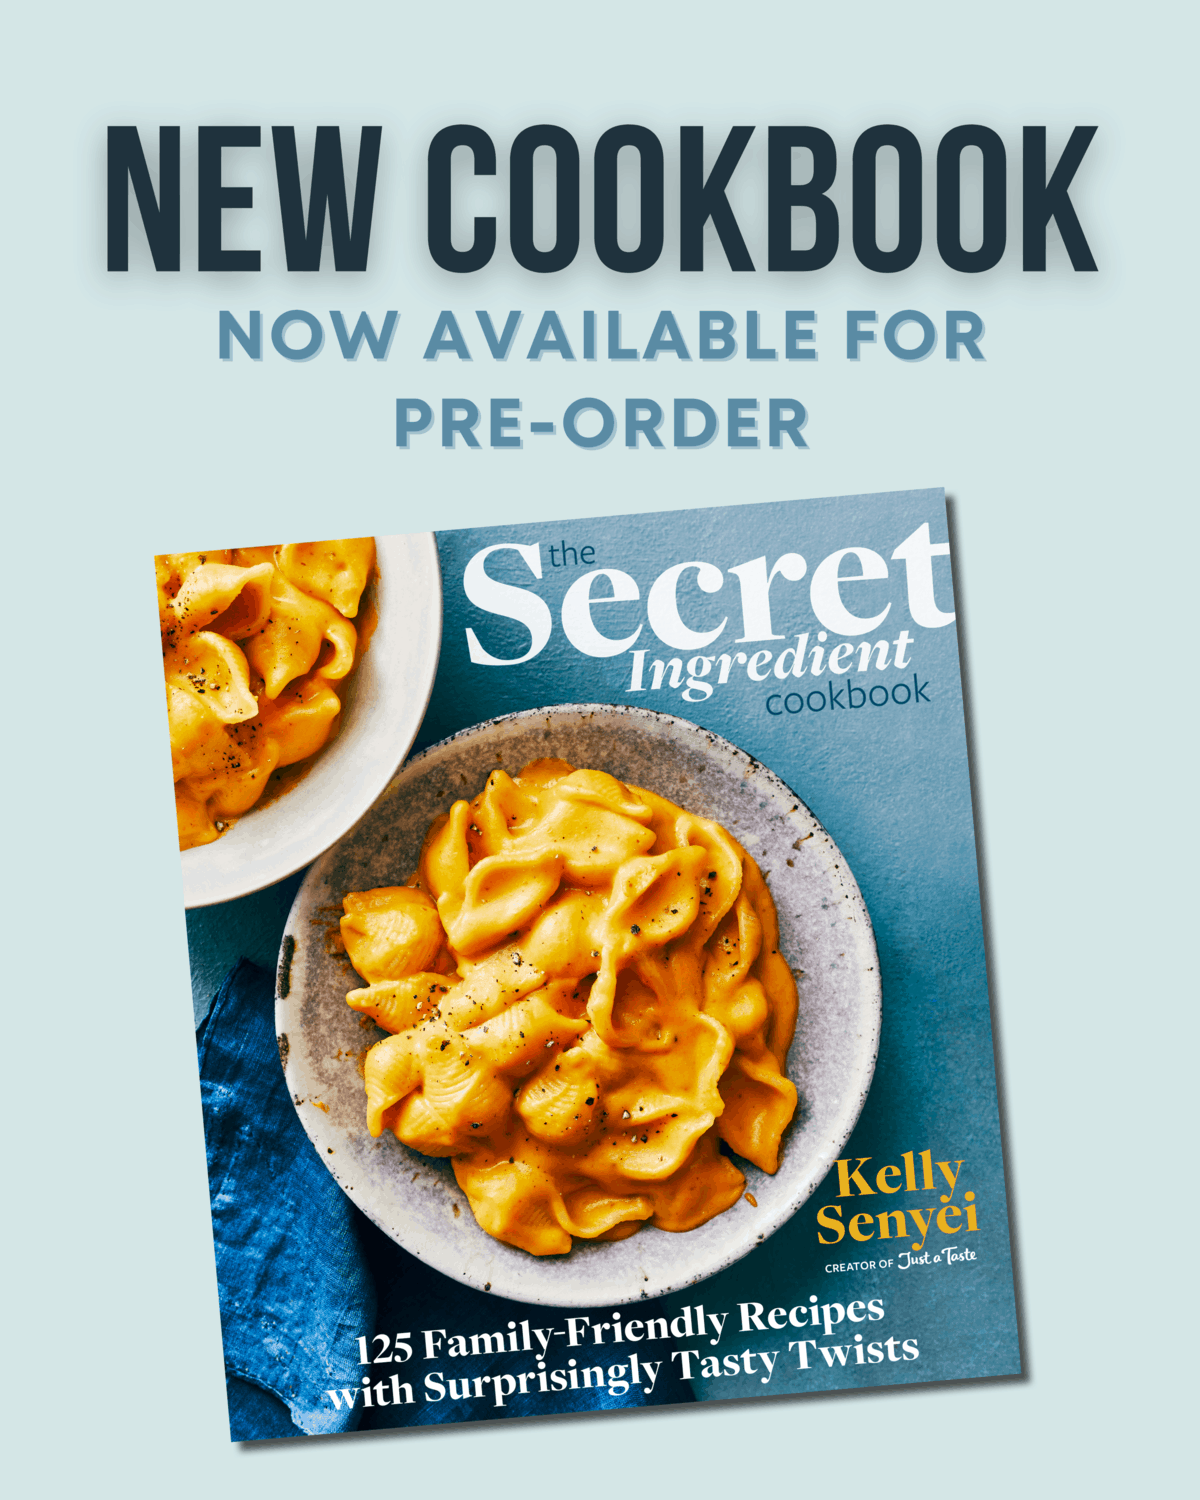 The Secret Ingredient Cookbook is now available for pre-order